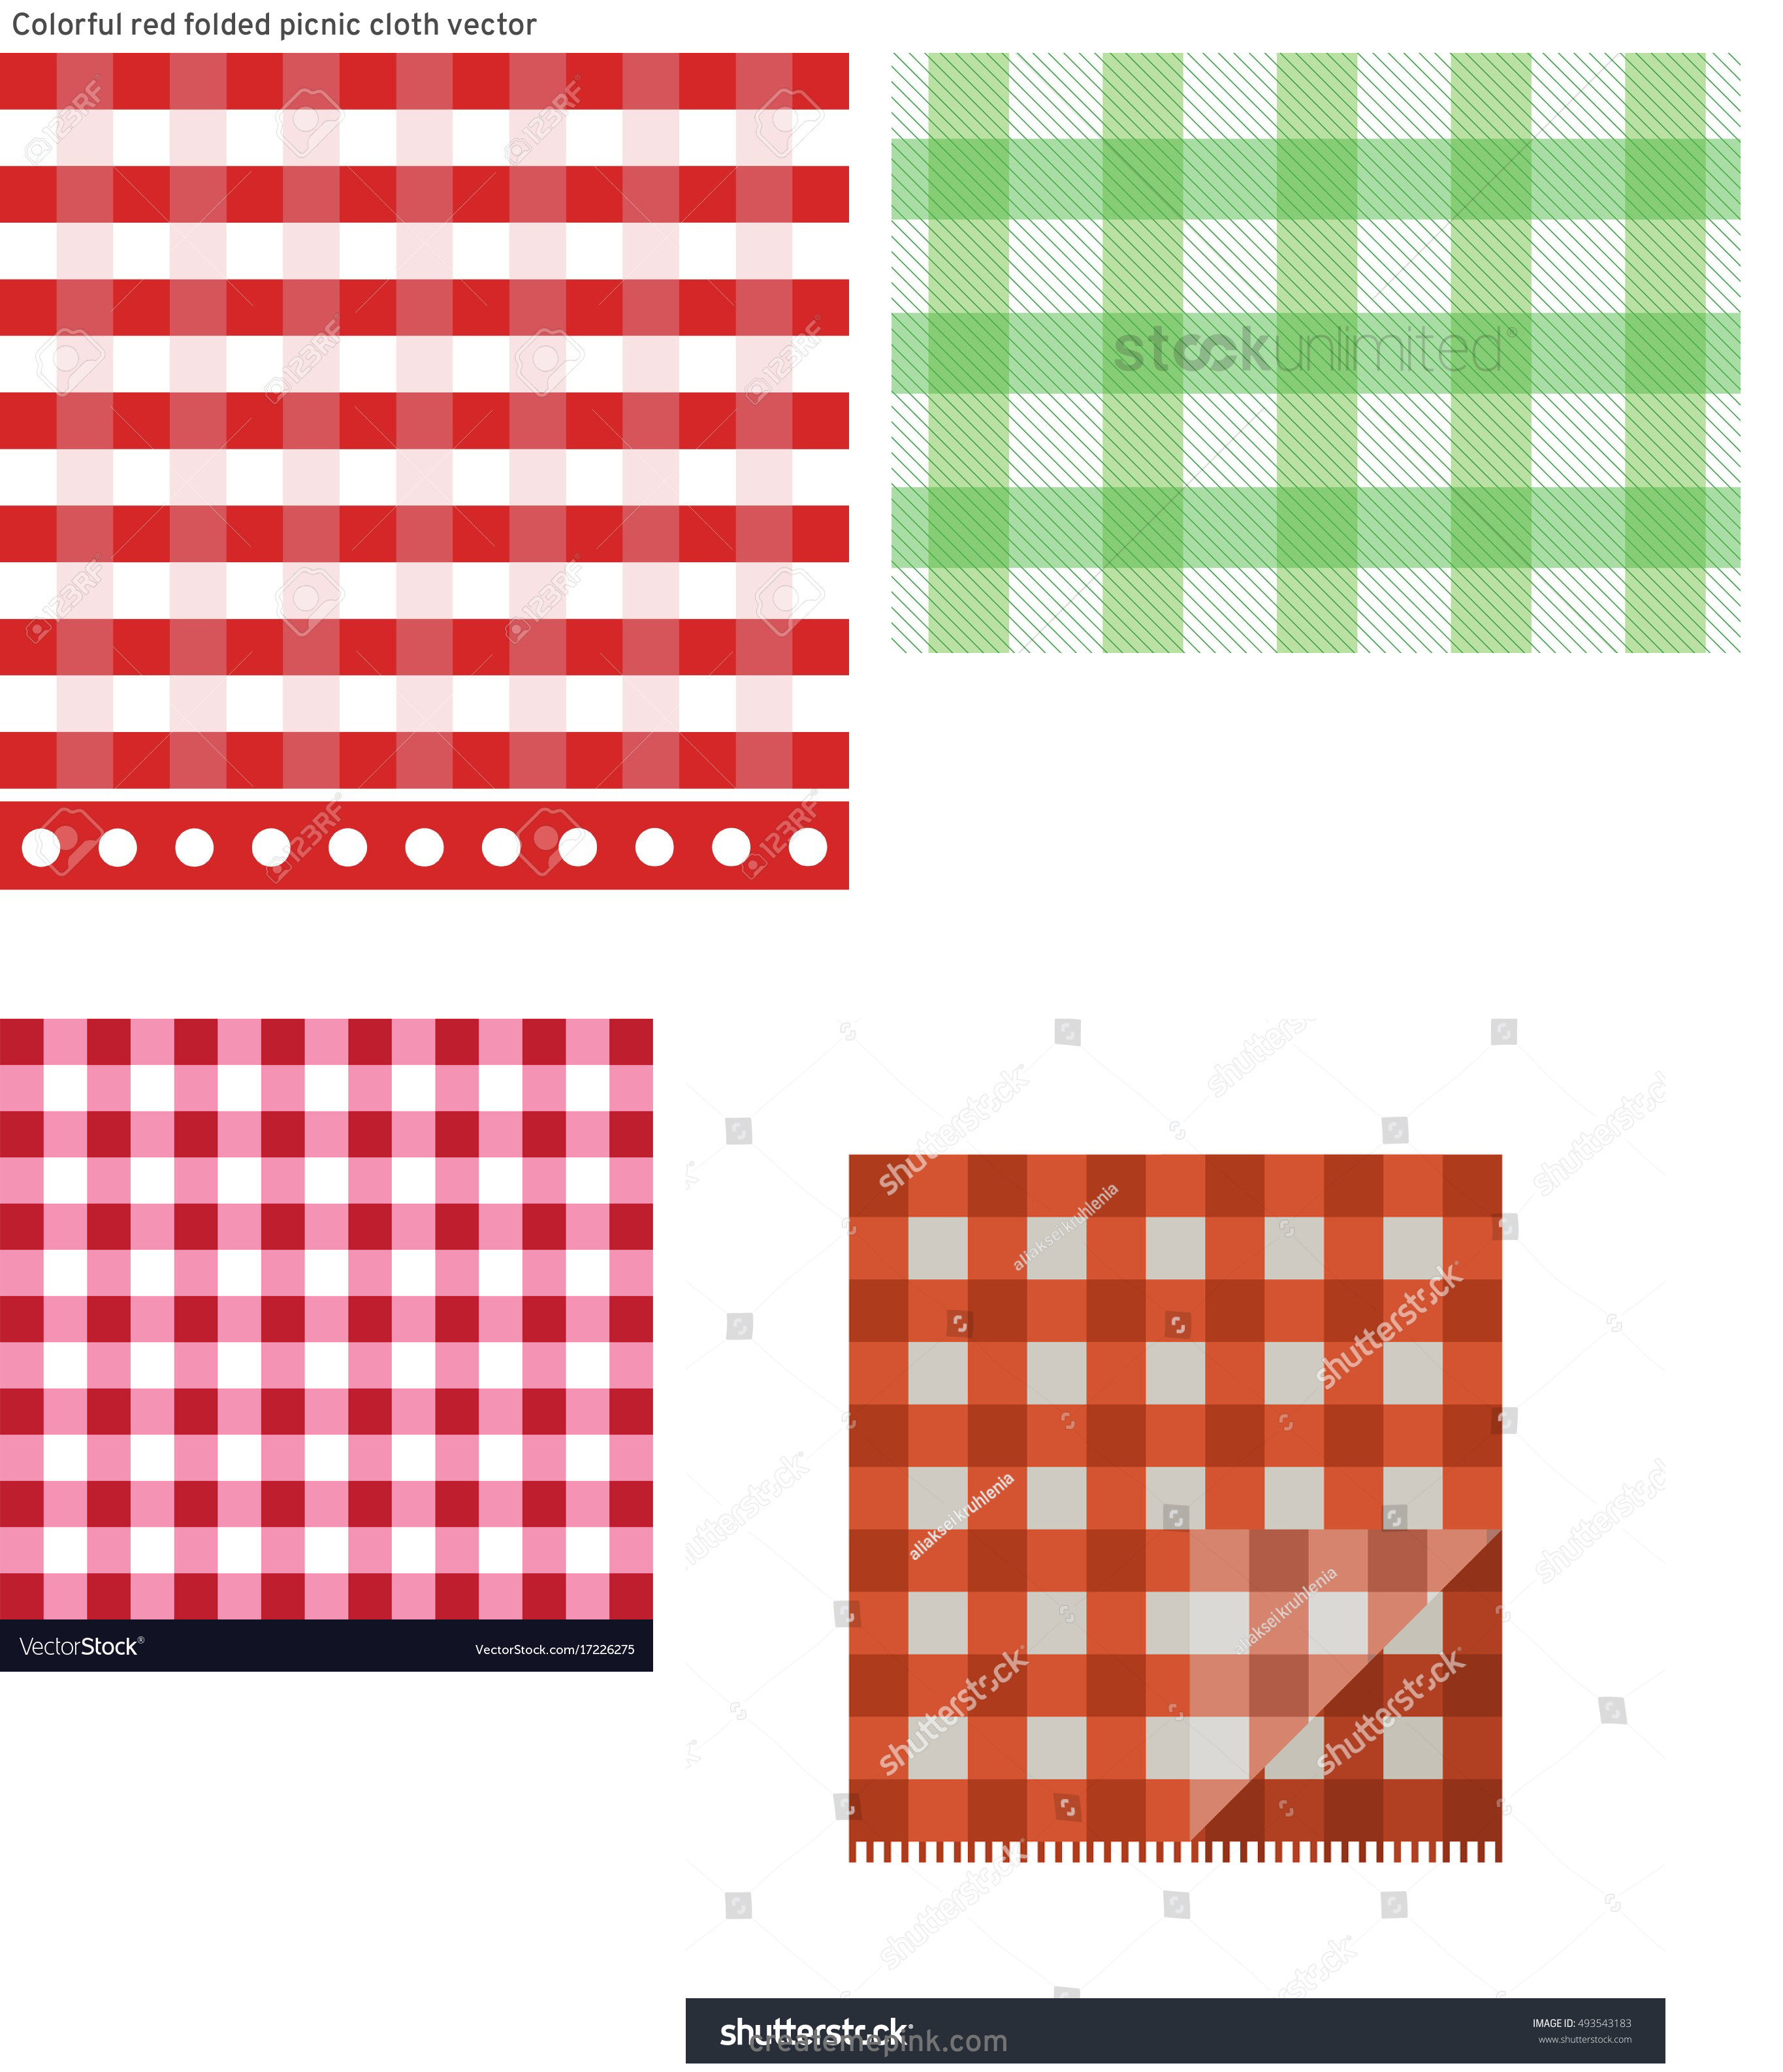 Picnic Cloth Vector: Colorful Red Folded Picnic Cloth Vector